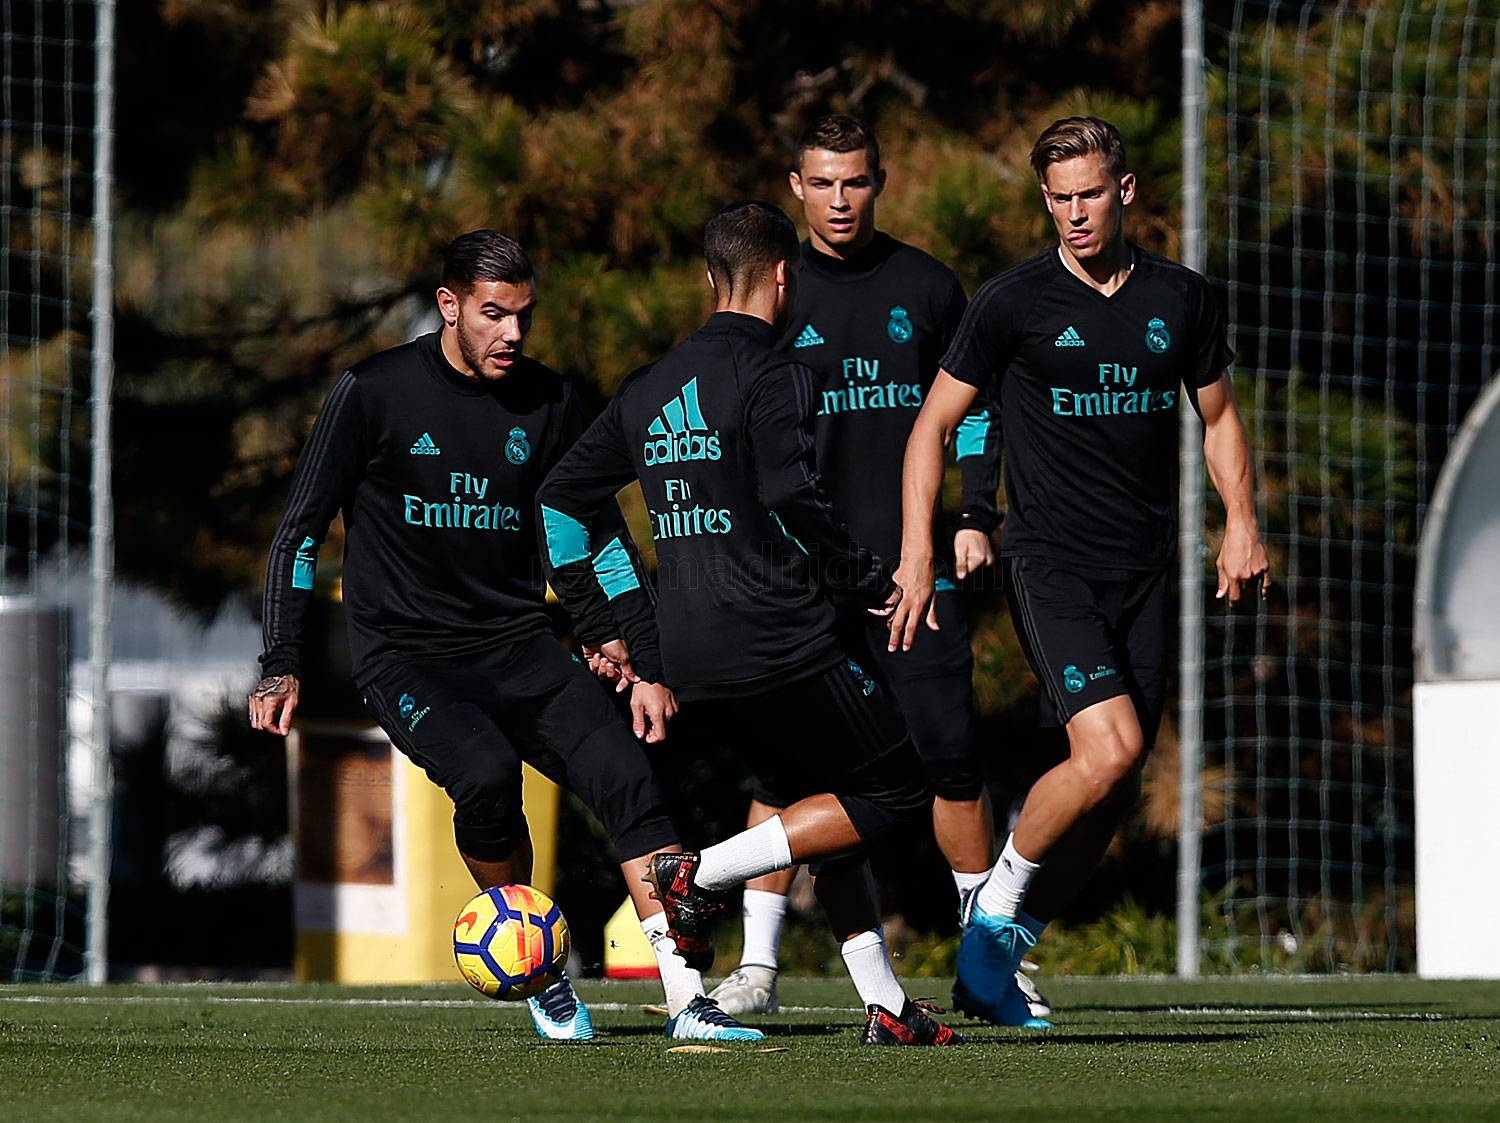 Real Madrid - Entrenamiento del Real Madrid - 10-11-2017